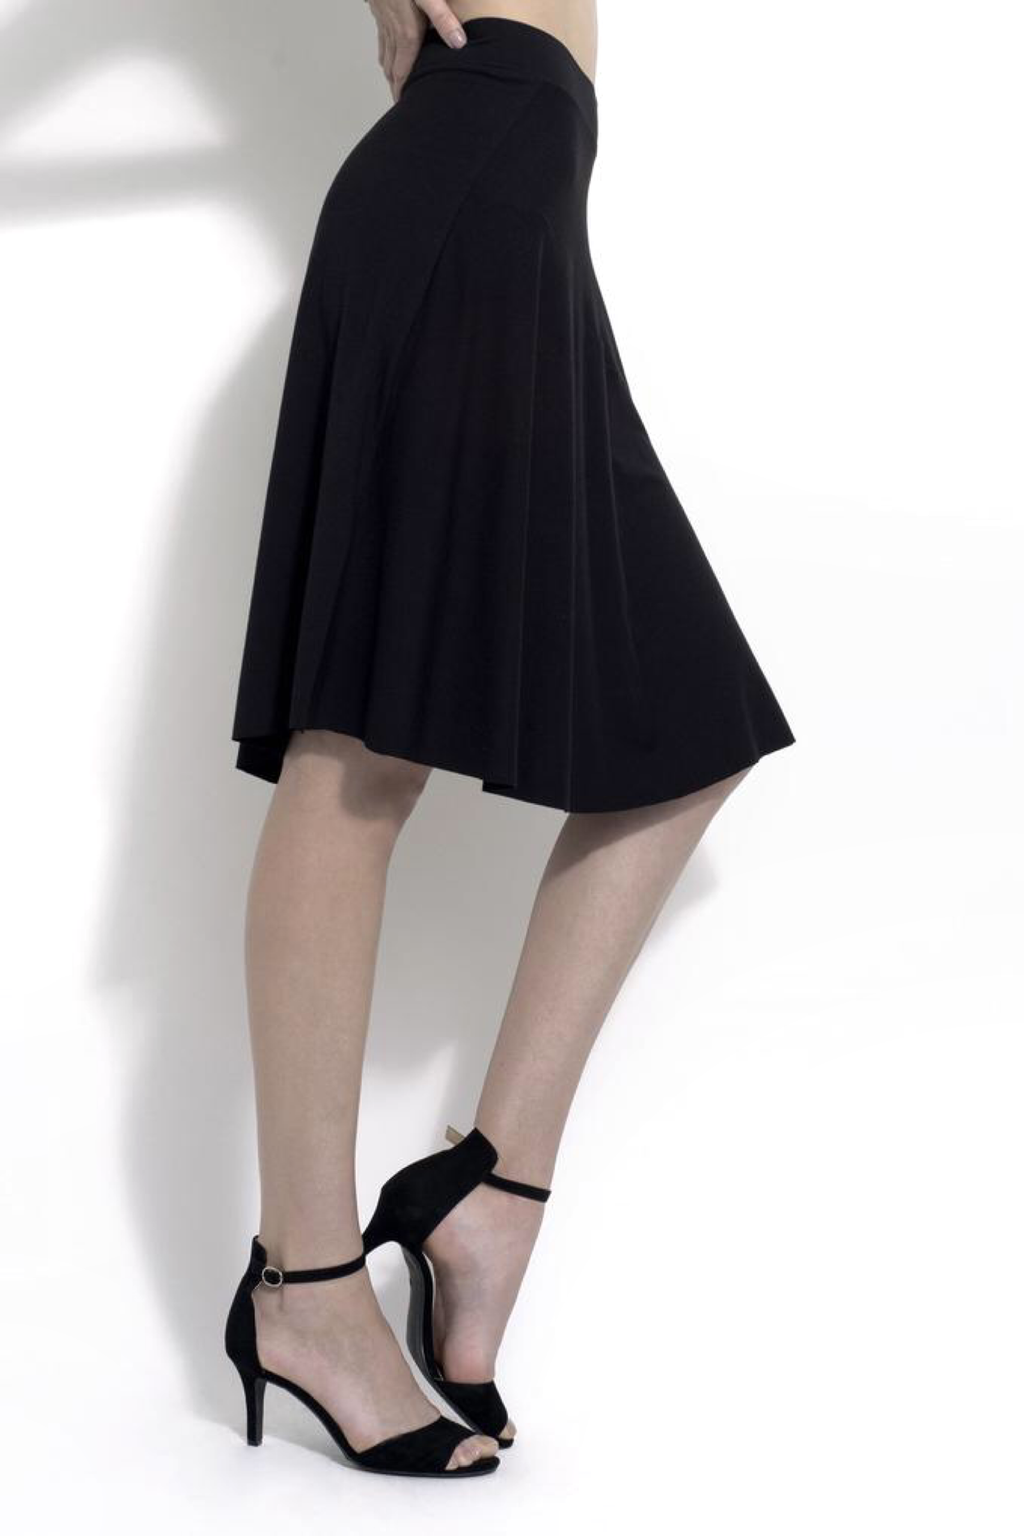 Norma A-line Bamboo Skirt - ROSE MADE SHOP